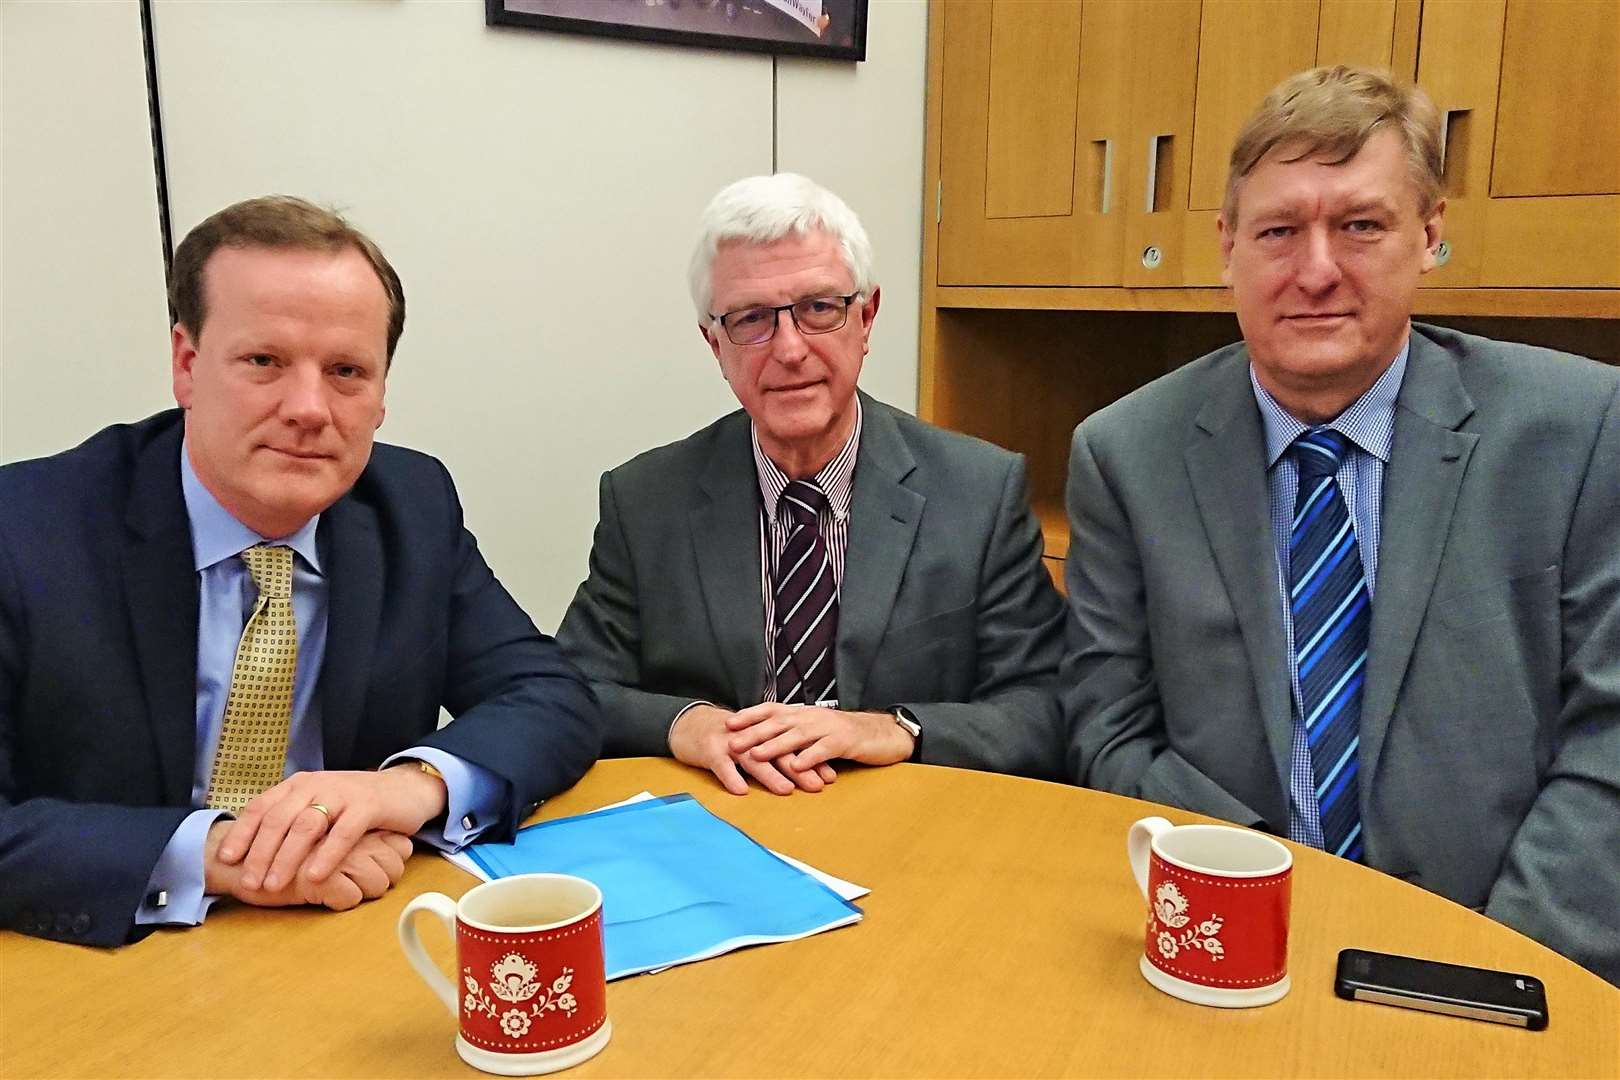 Deal MP Charlie Elphicke and Dover District Council leader Keith Morris with M&S head of public affairs Tony Ginty (centre)